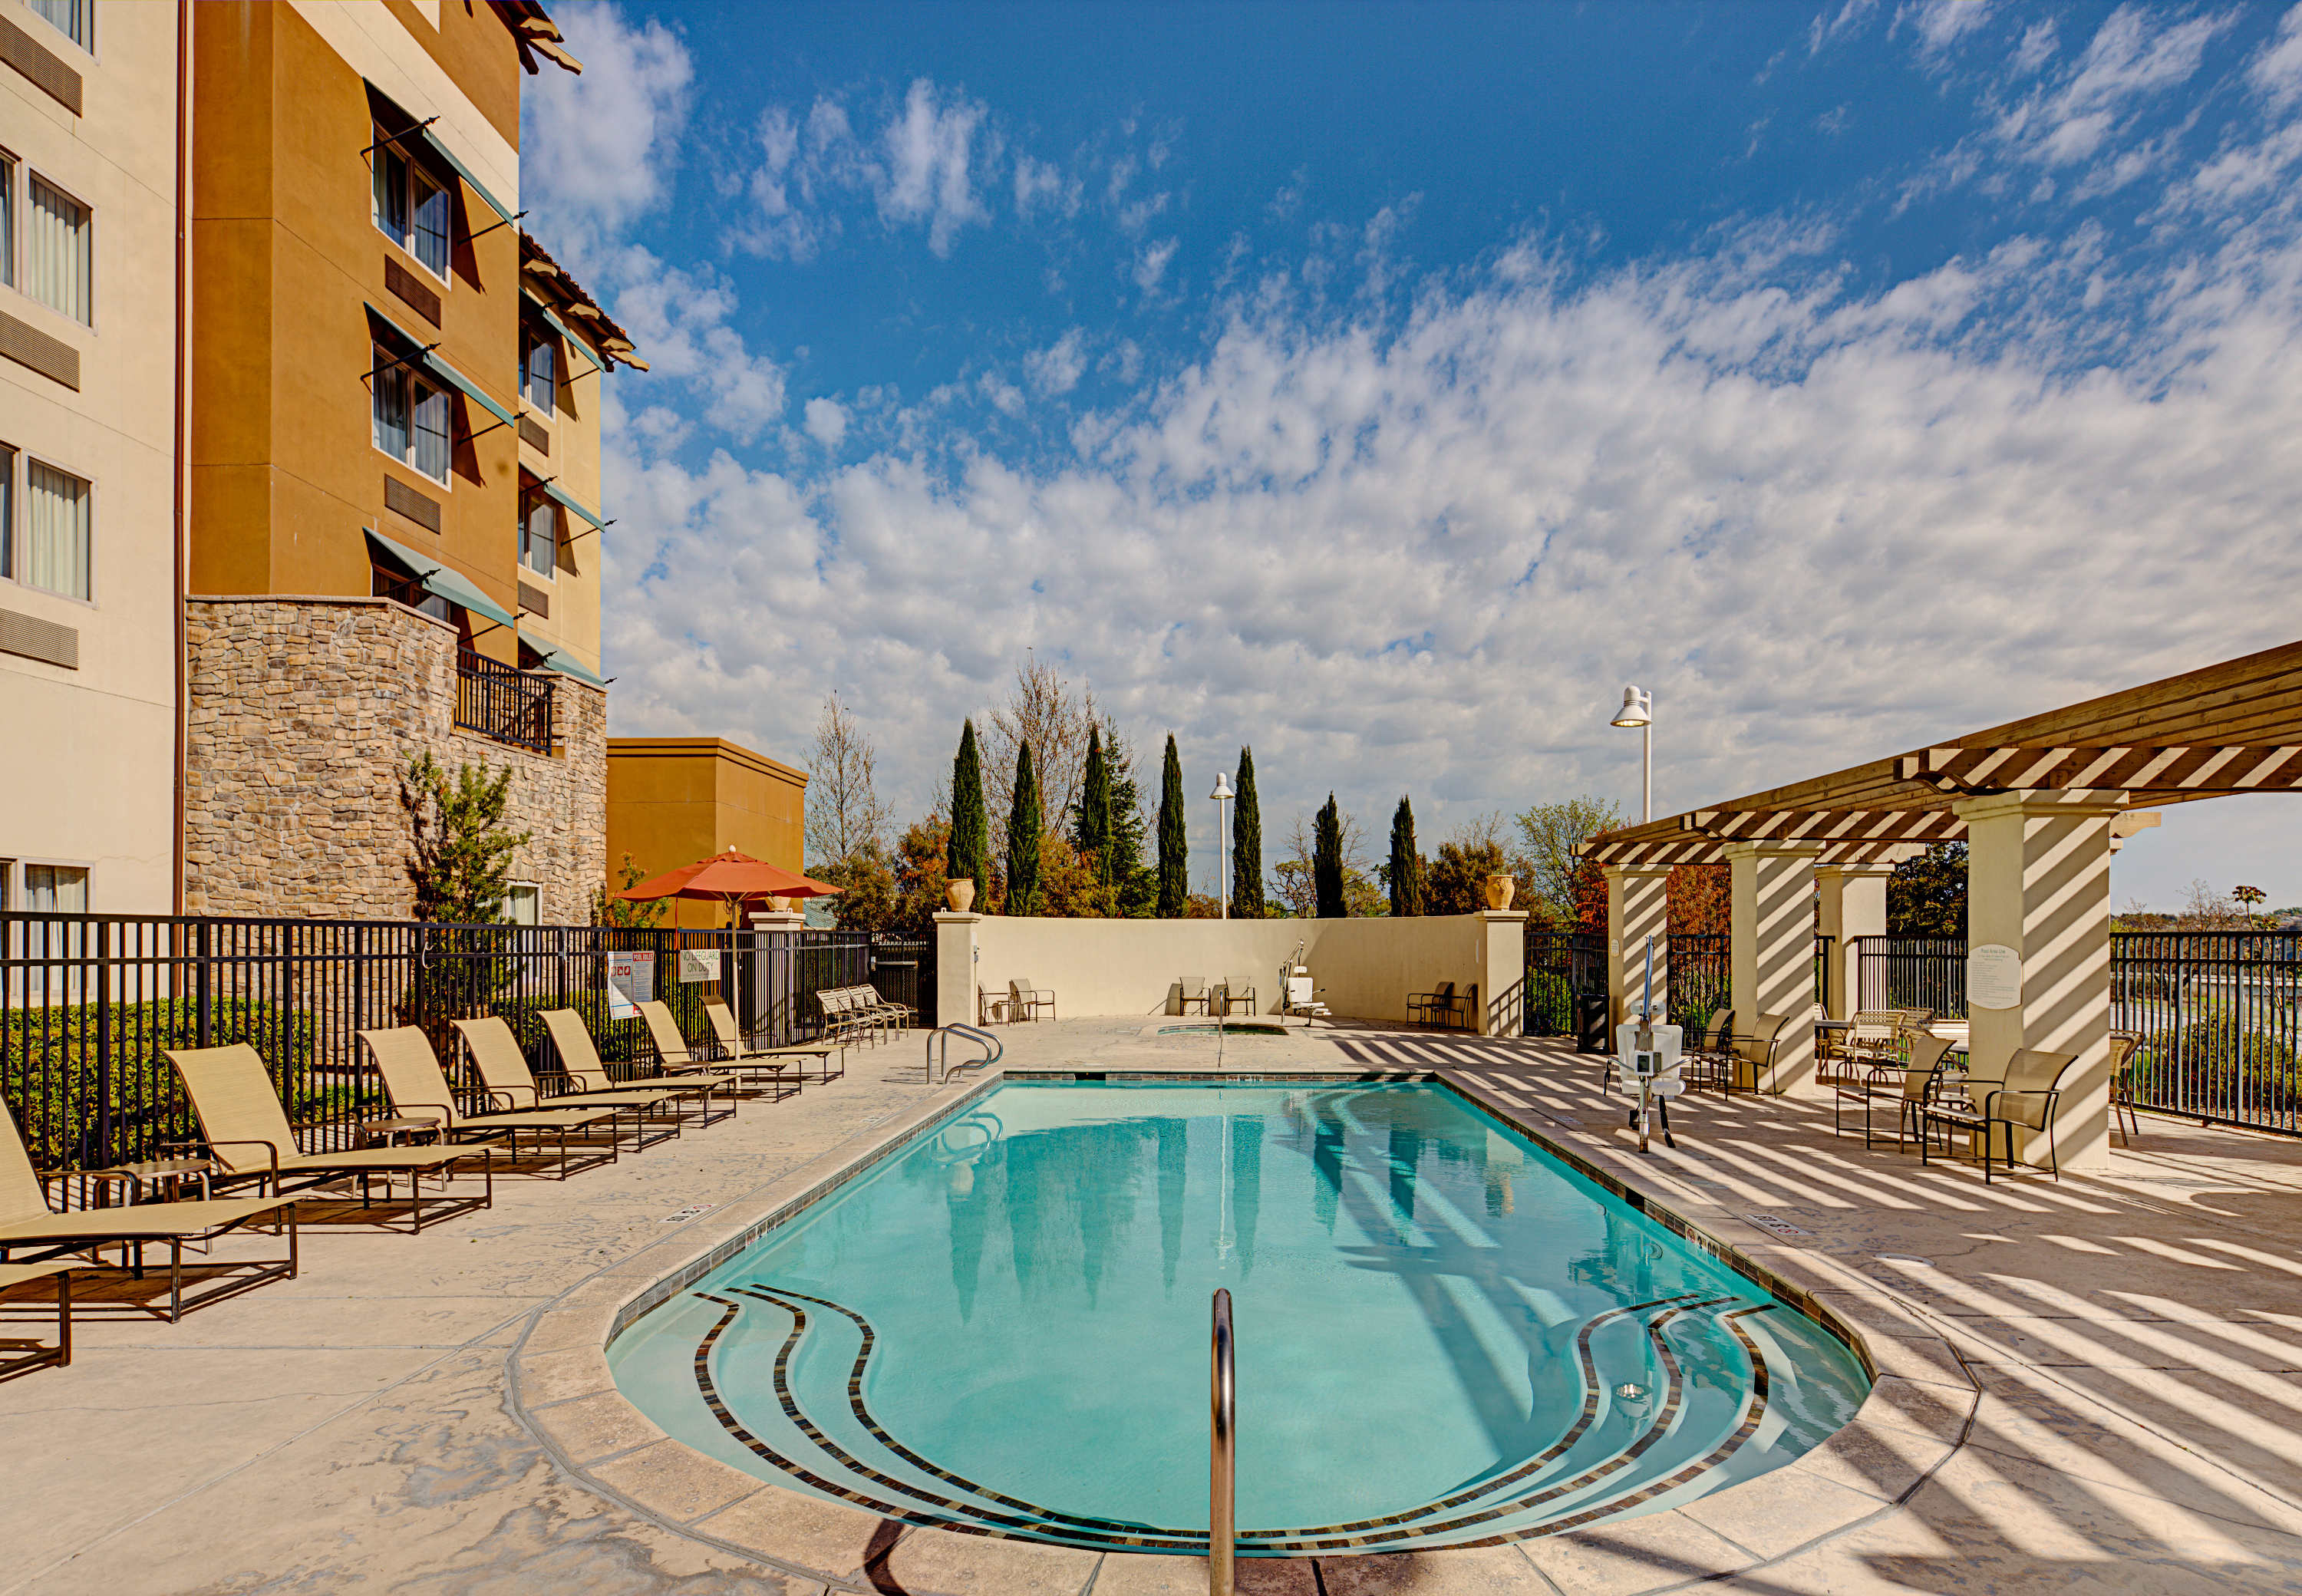 Courtyard by Marriott Paso Robles image 13